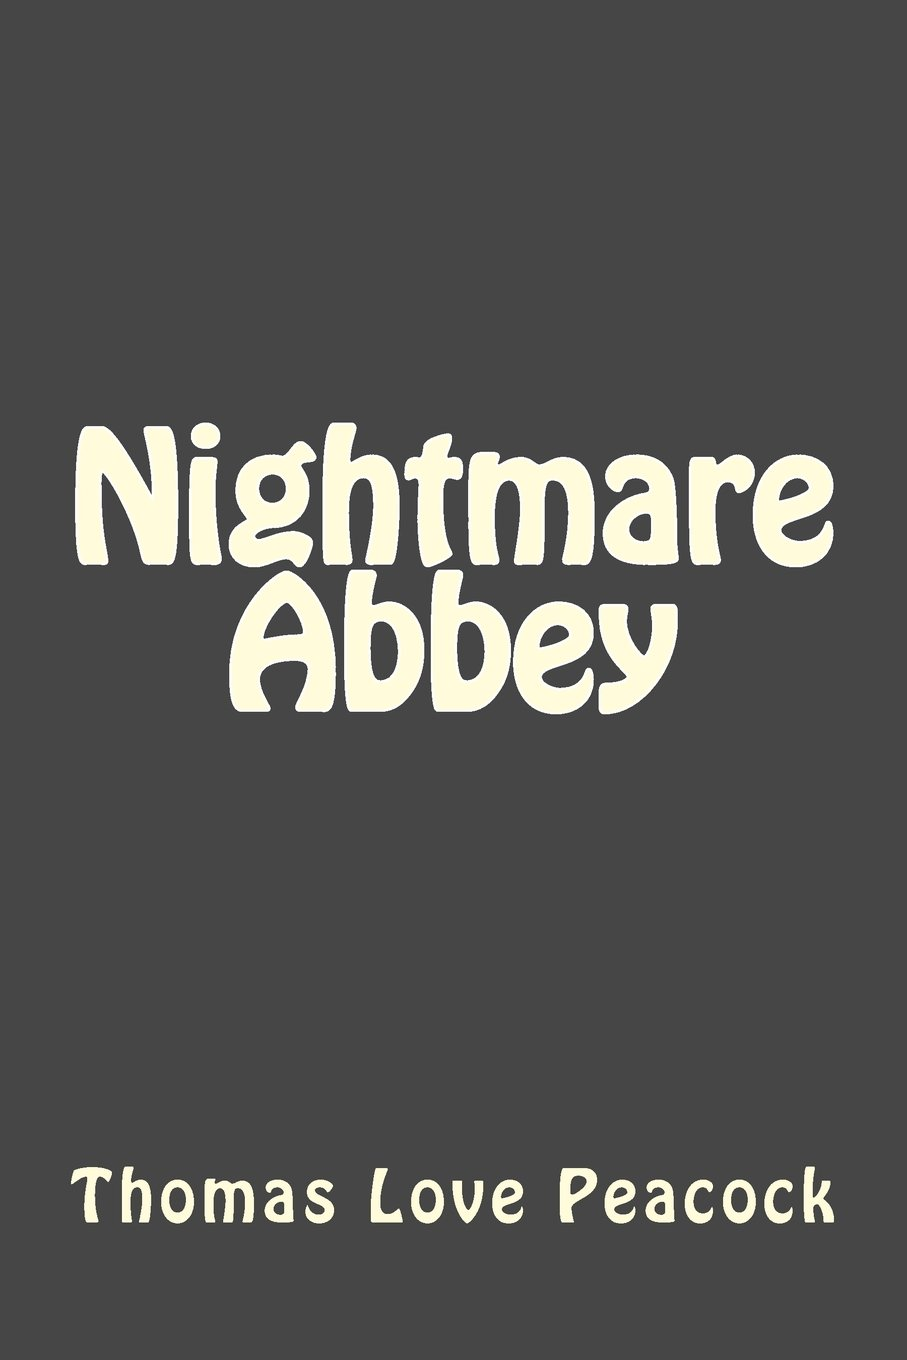 Nightmare Abbey: Amazon.es: Thomas Love Peacock: Libros en idiomas extranjeros